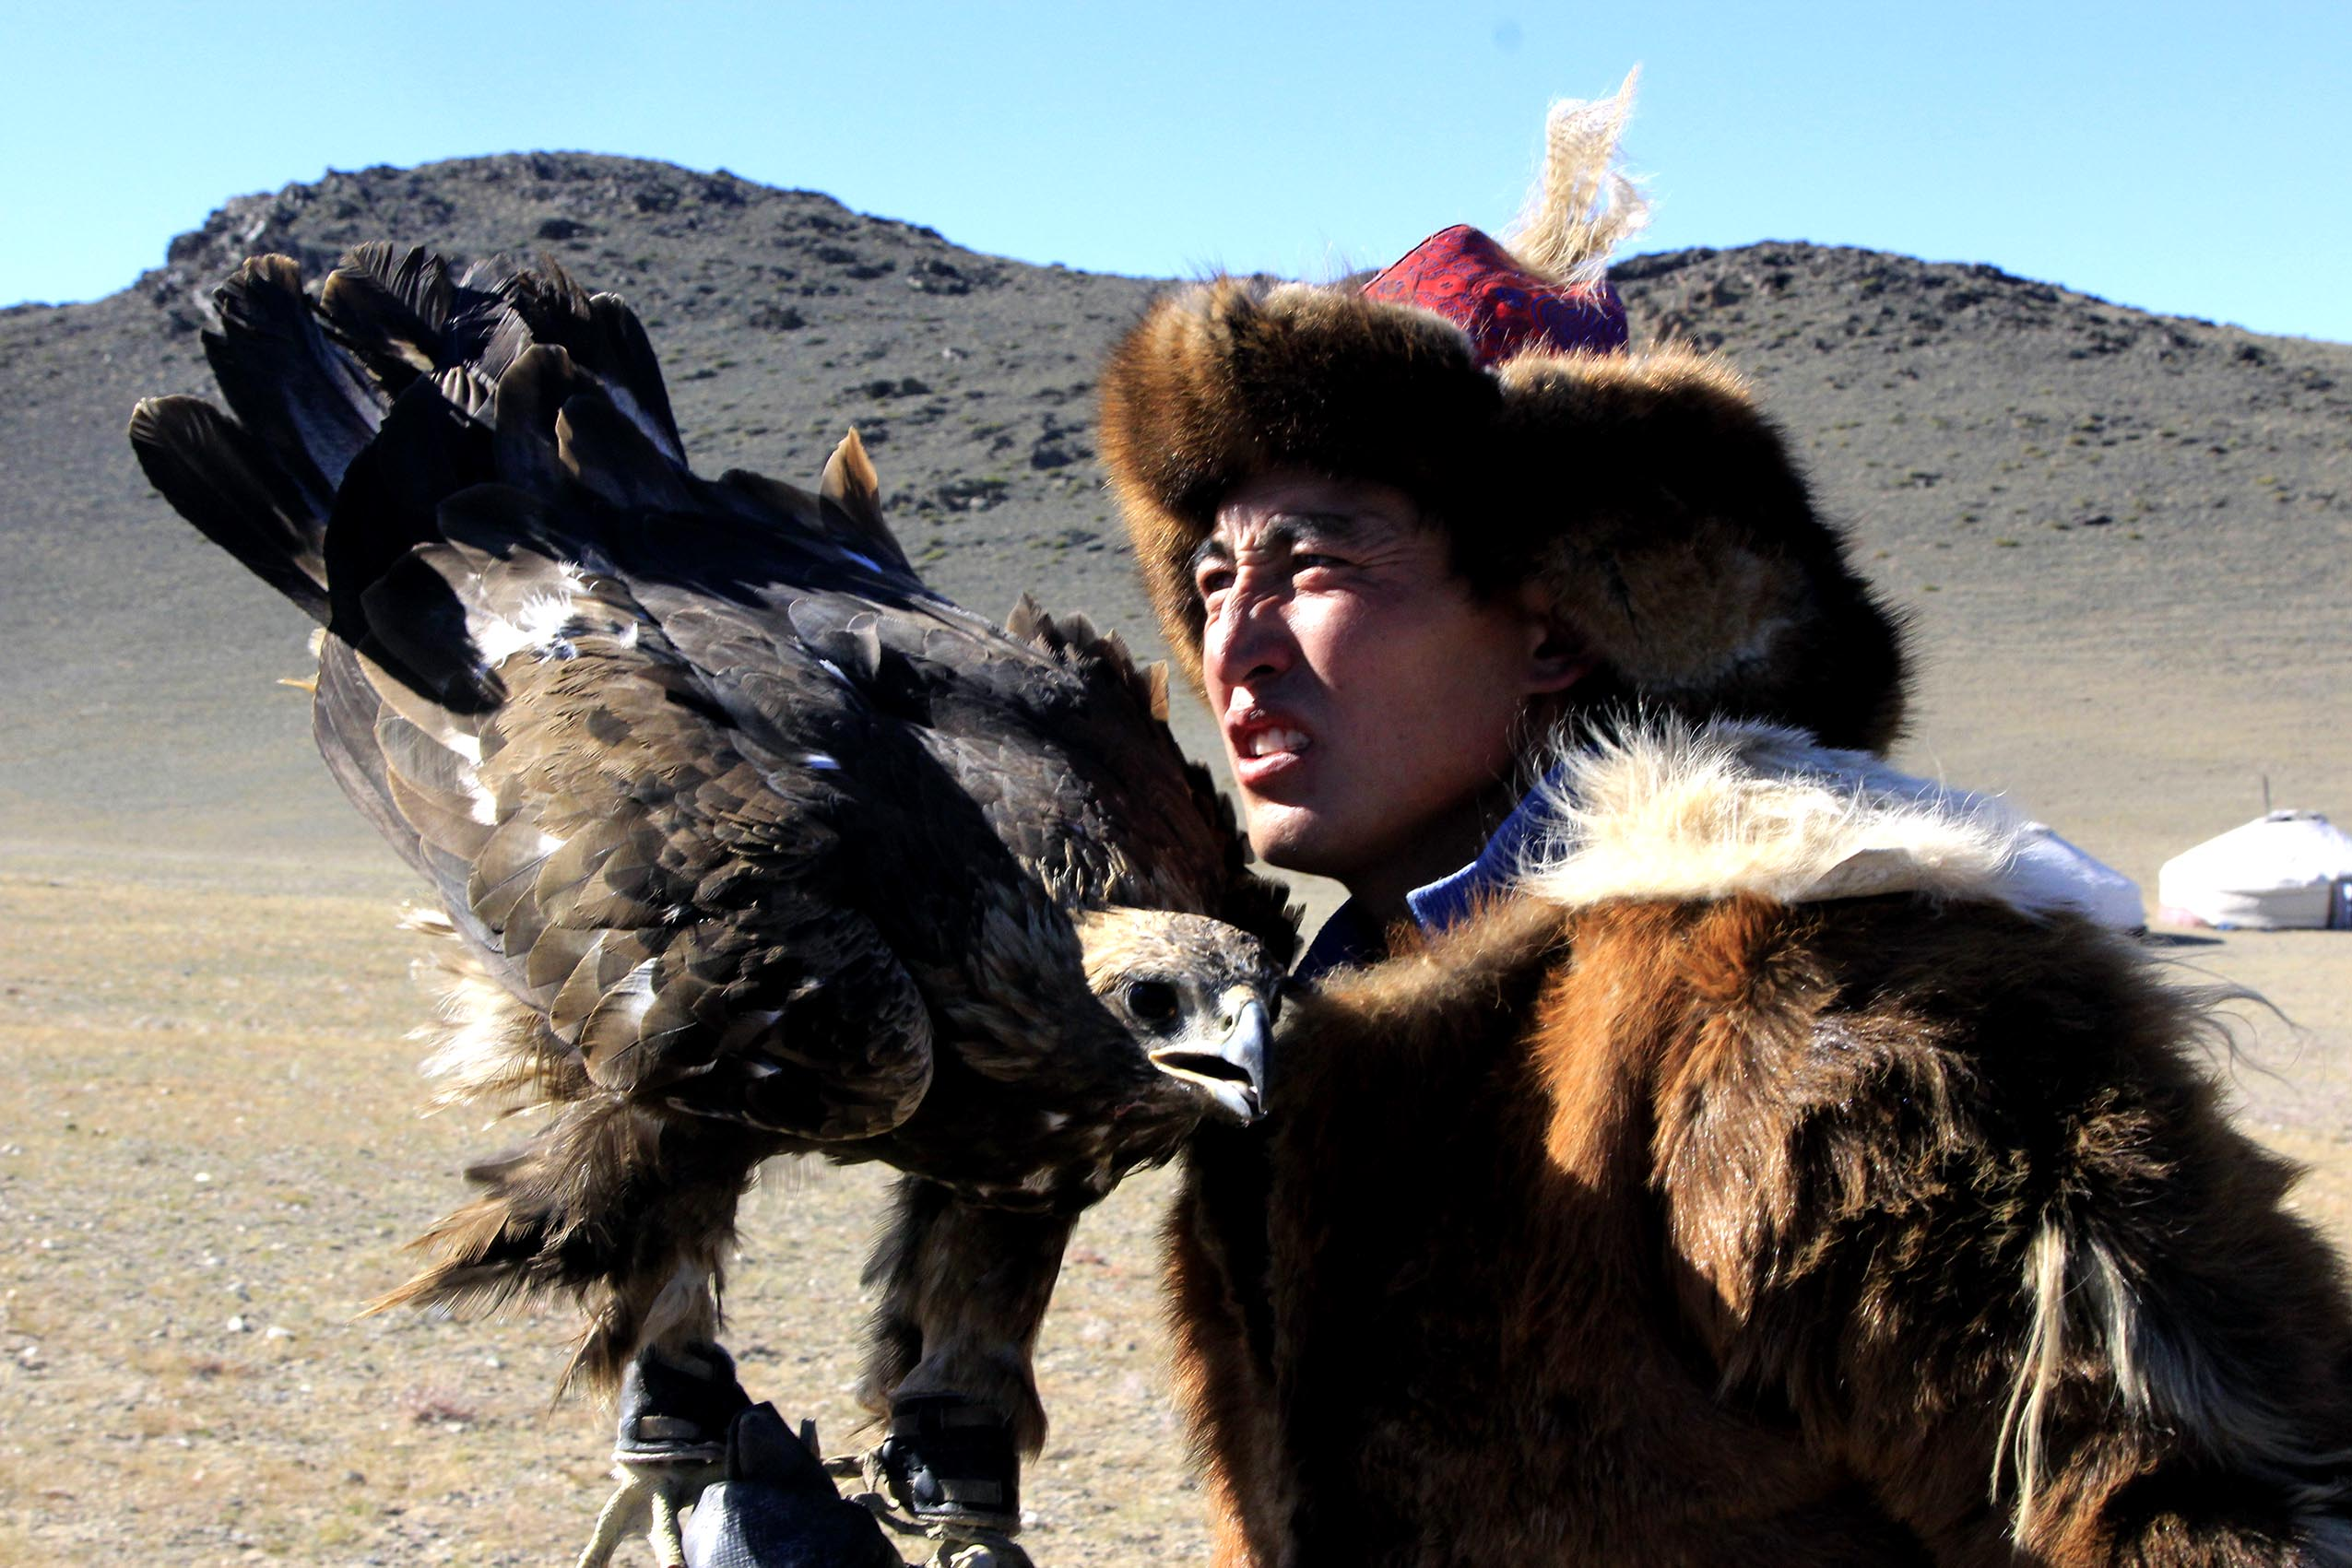 Eagle hunting experience in Kazak family